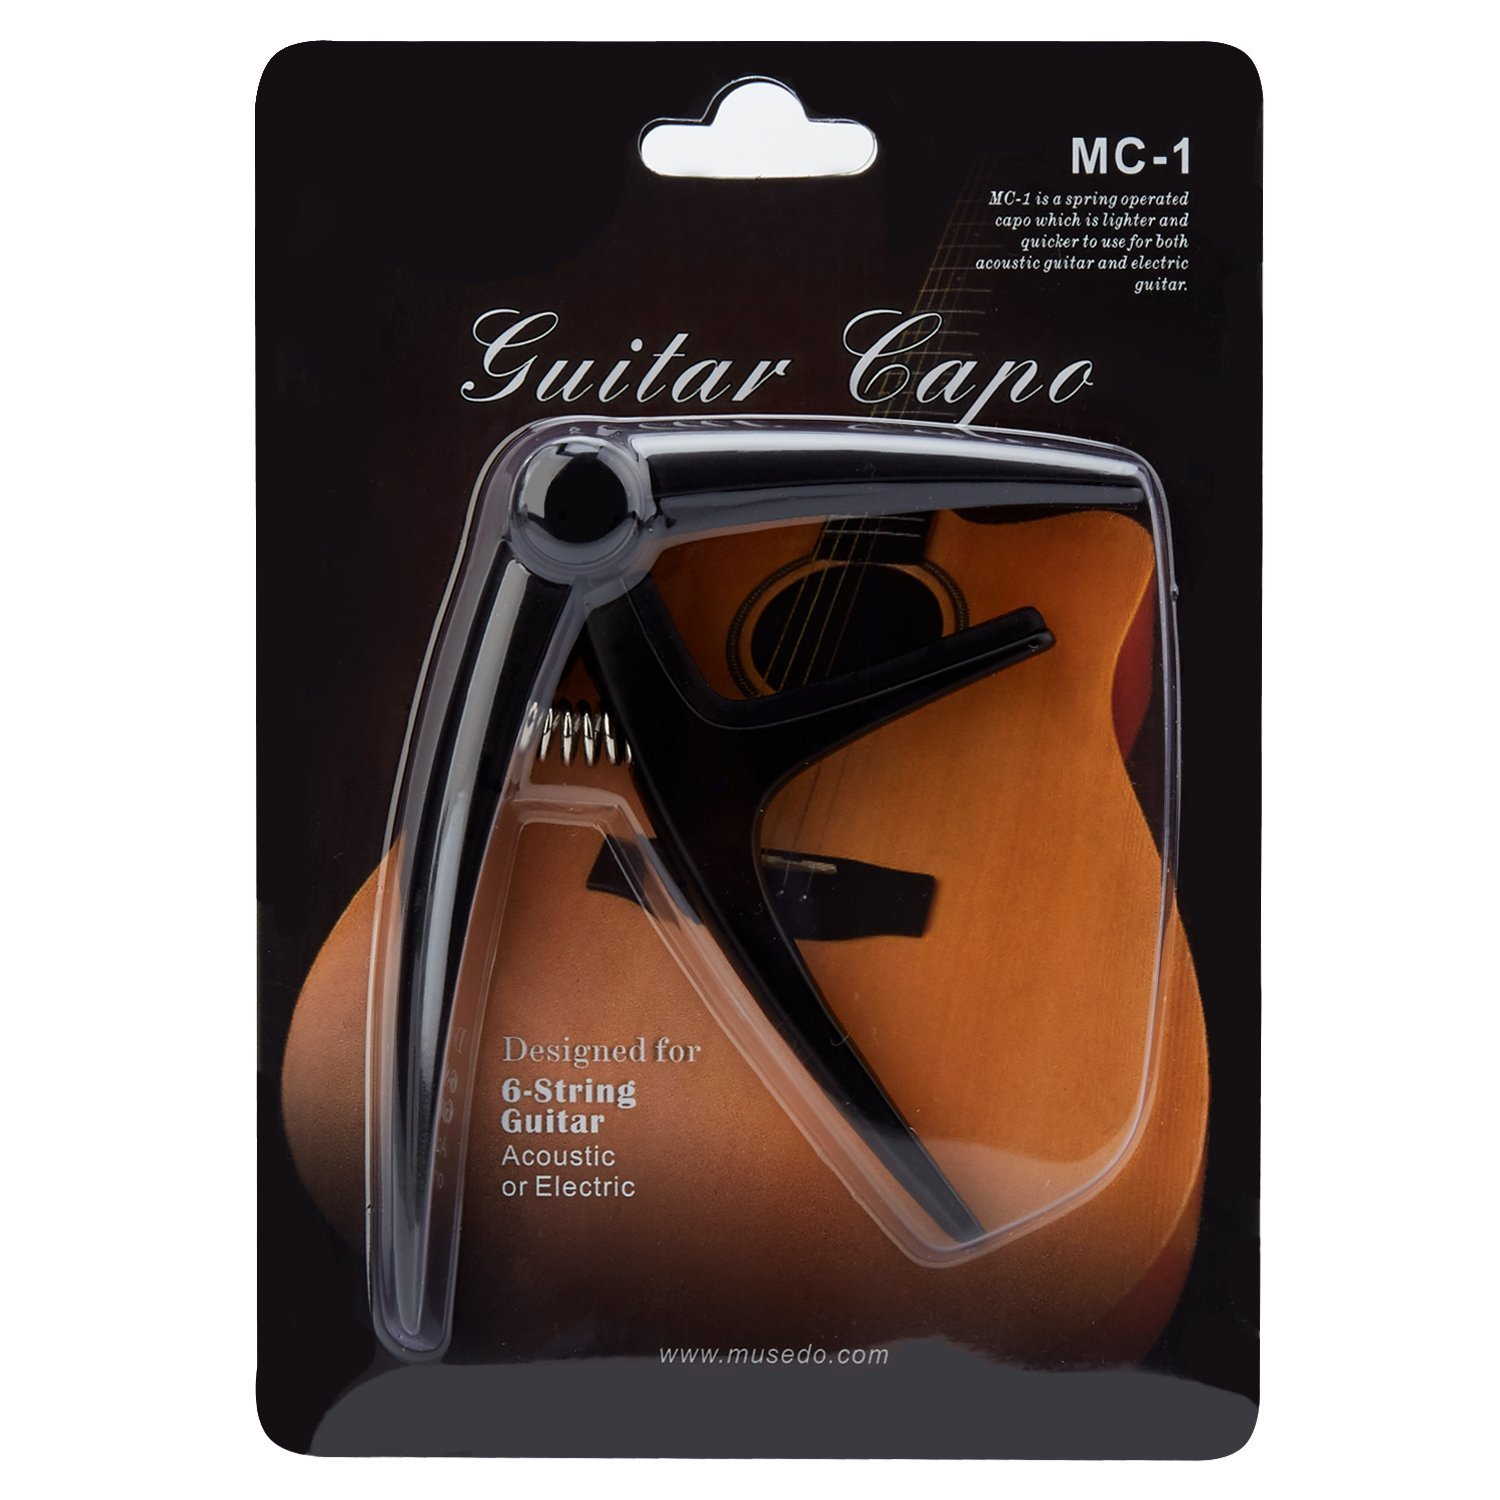 Guitar Capo, Guitar Accessories Aluminium Alloy Spring Capo for Acoustic and Electric Guitar- Pro Quick Change,Trigger Style & Lightweight